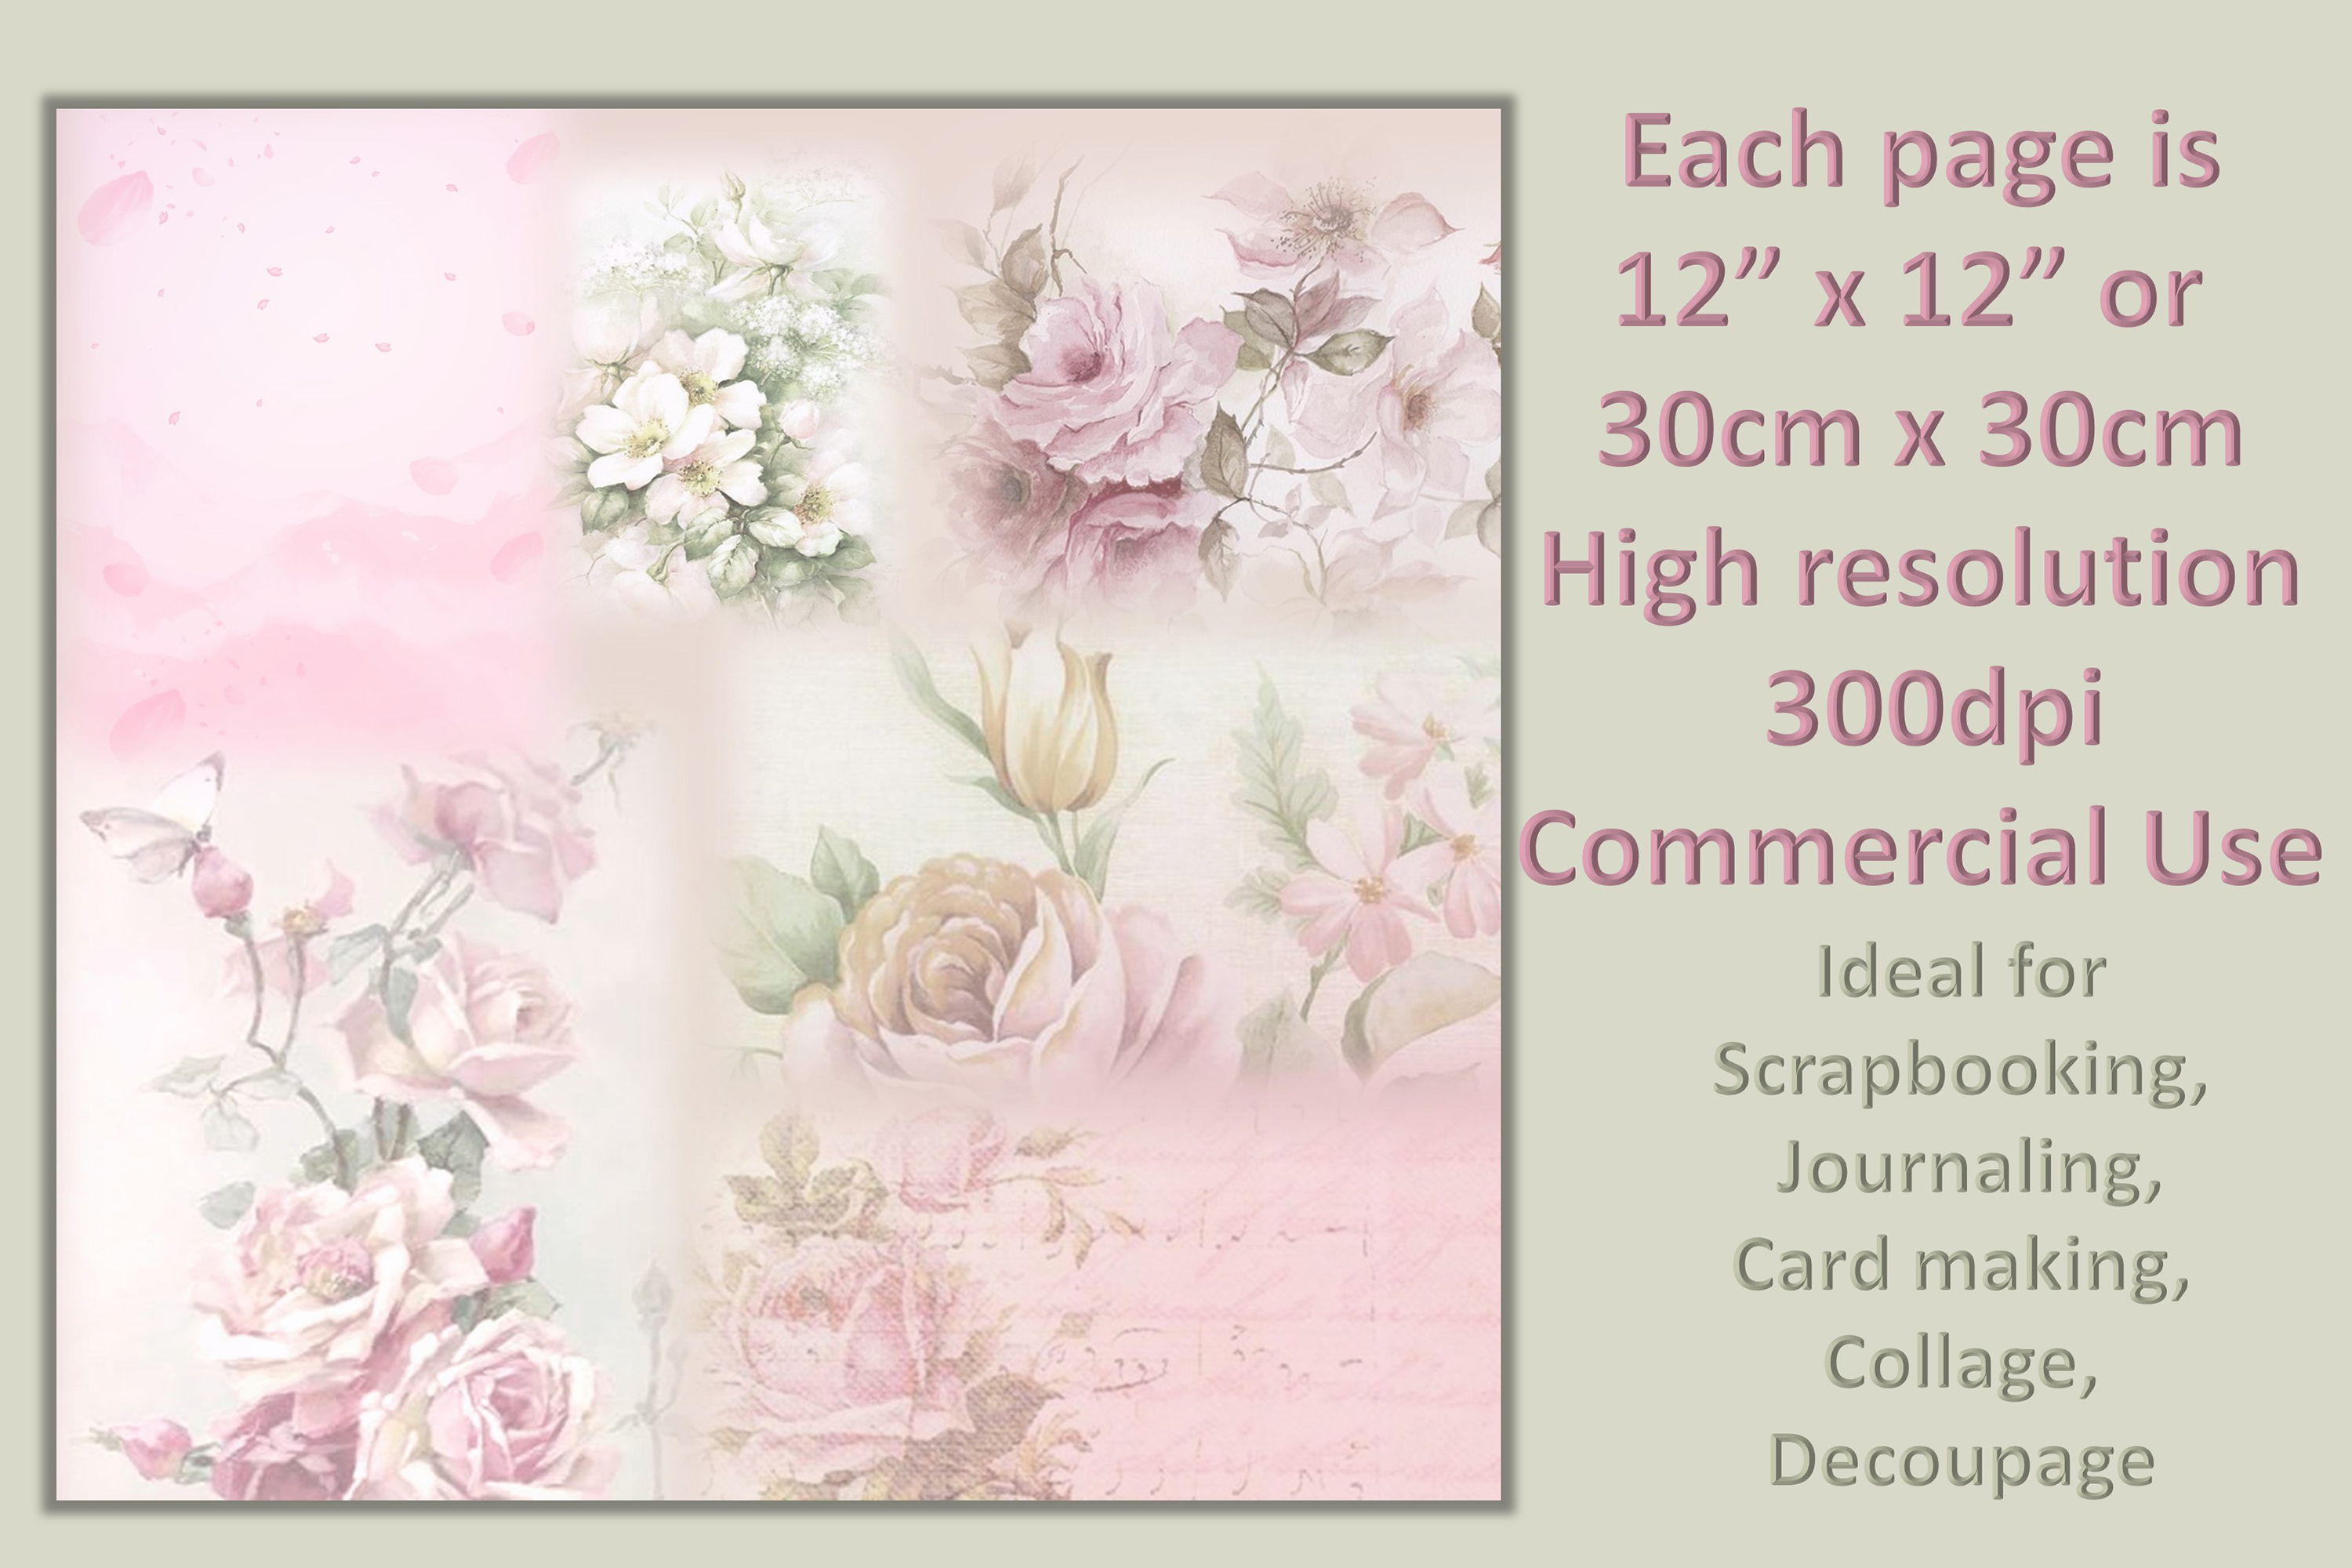 Vintage Shabby Chic Scrapbook Paper 12 x 12 example image 2